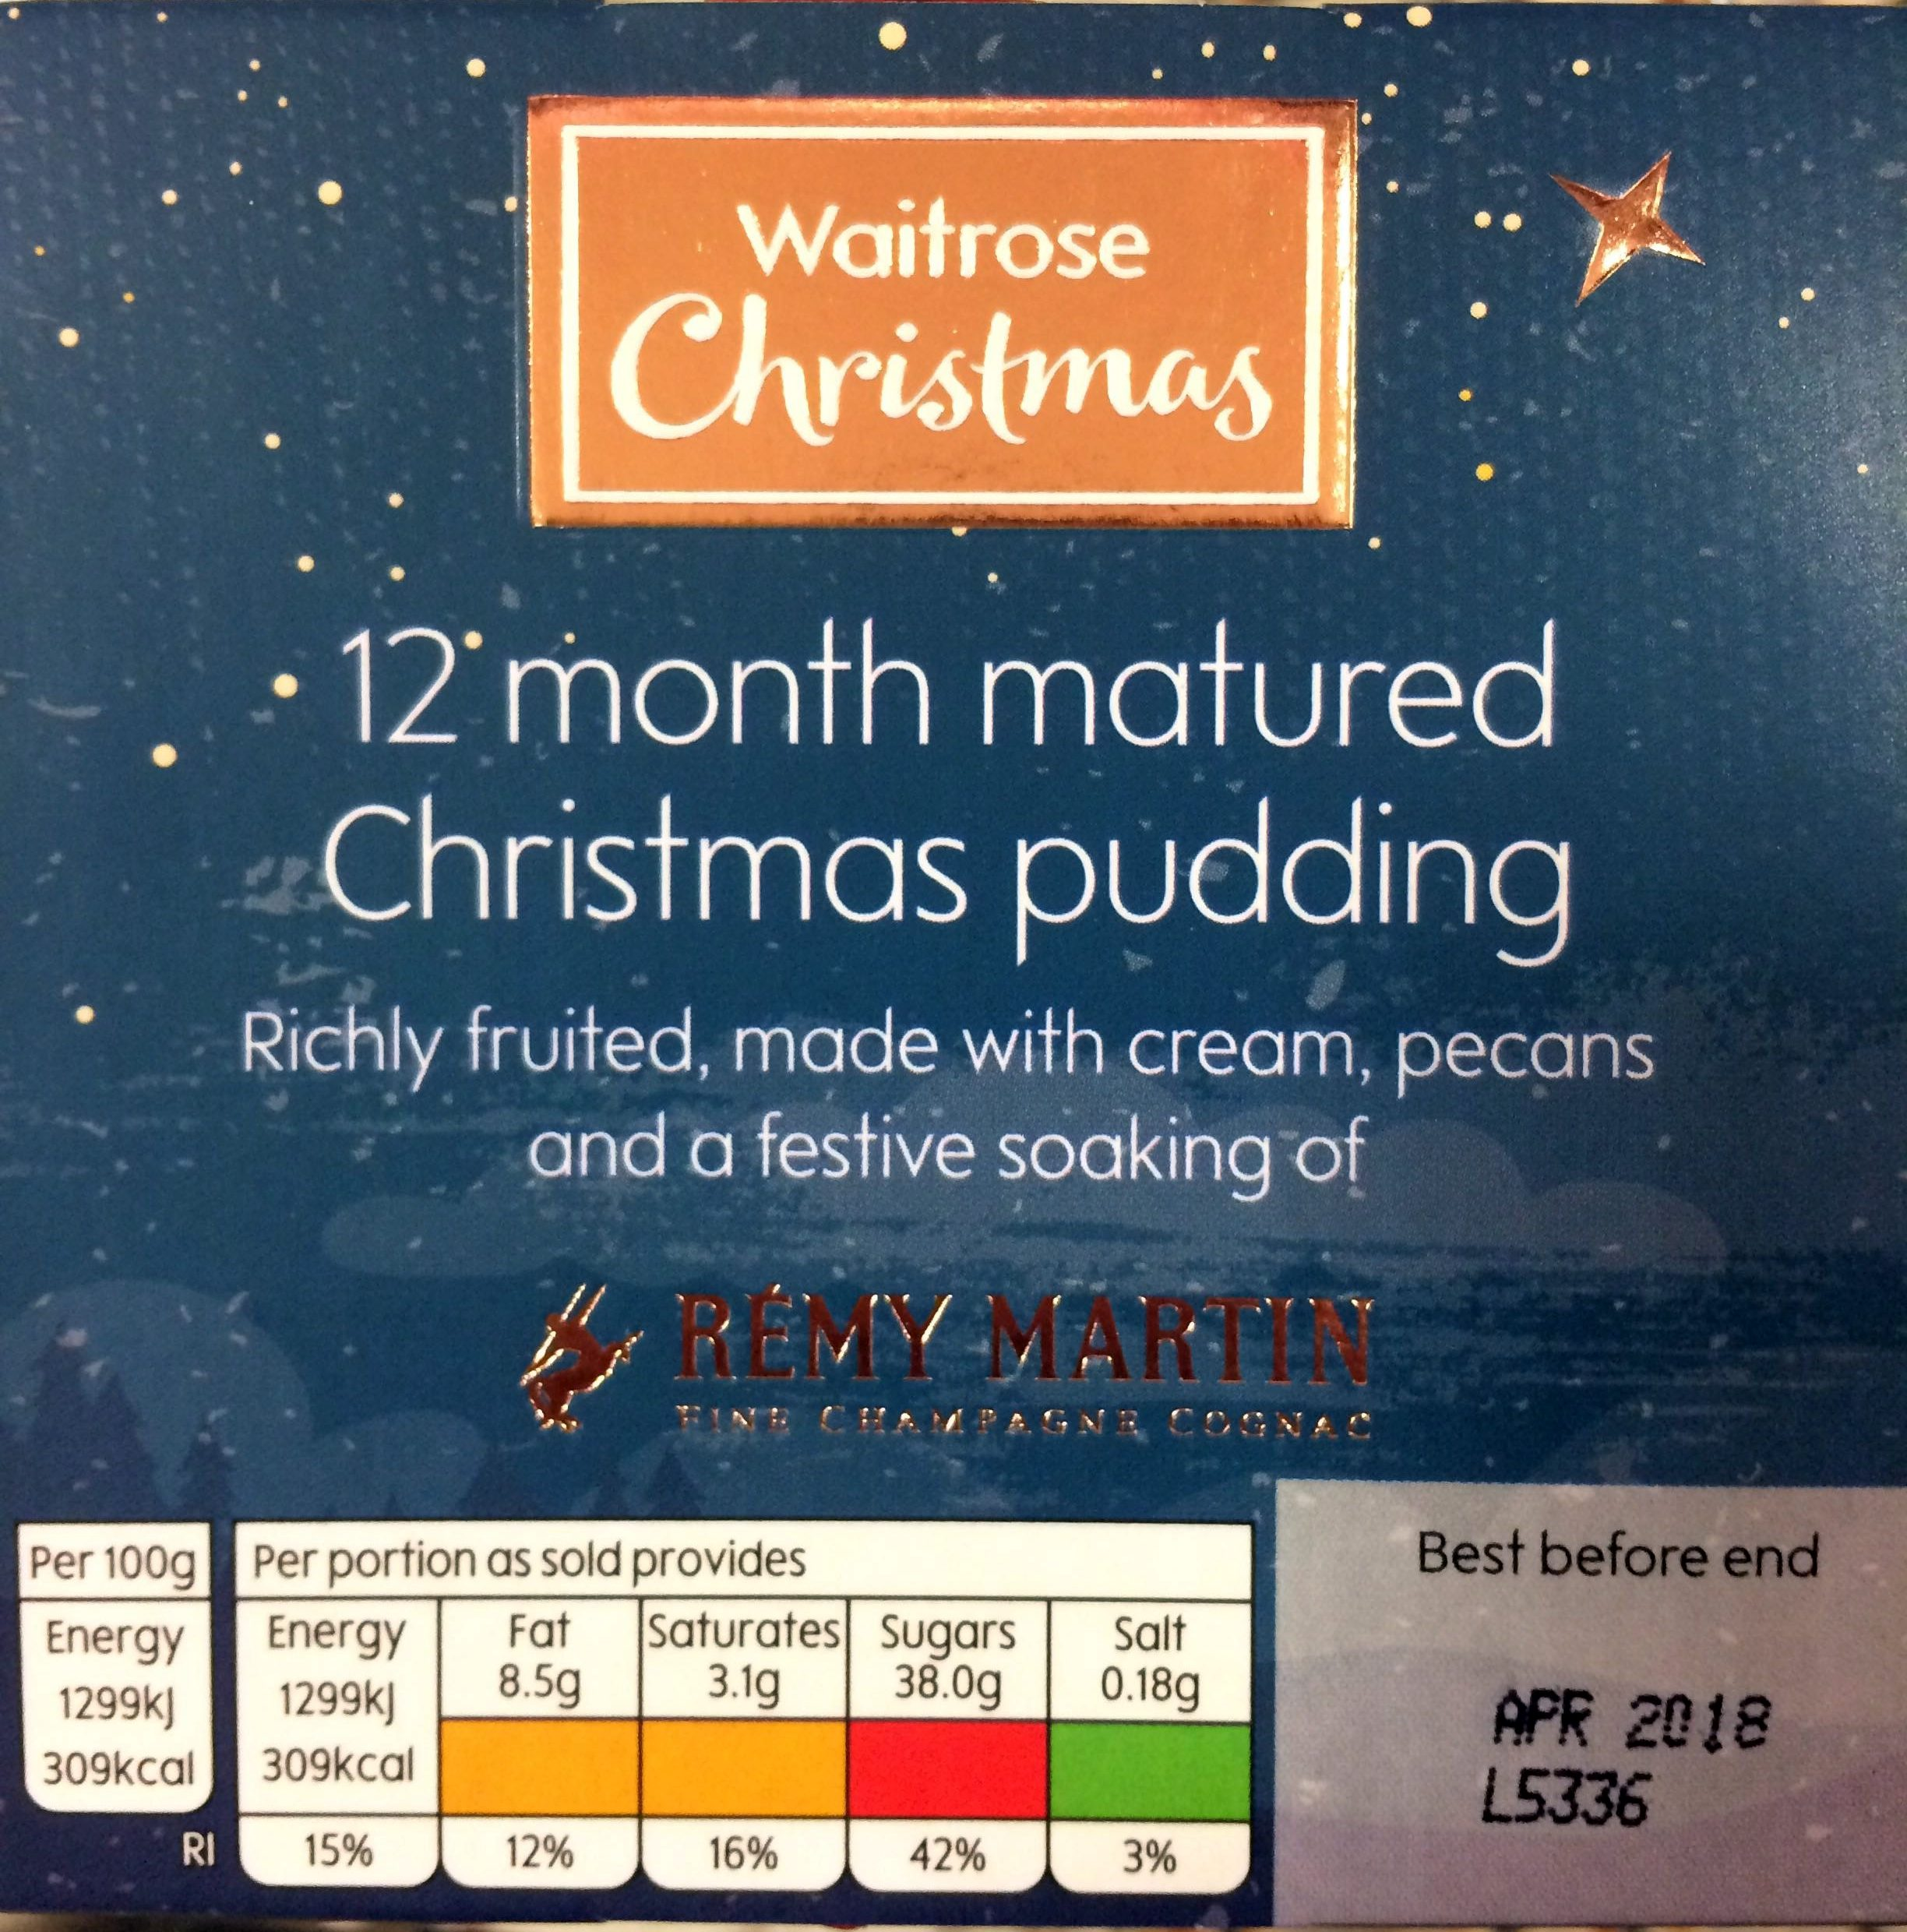 Richly Fruited Christmas Pudding 12 months matured, made with cream, pecans and a festive soaking of Rémy Martin Fine Champagne Cognac - Product